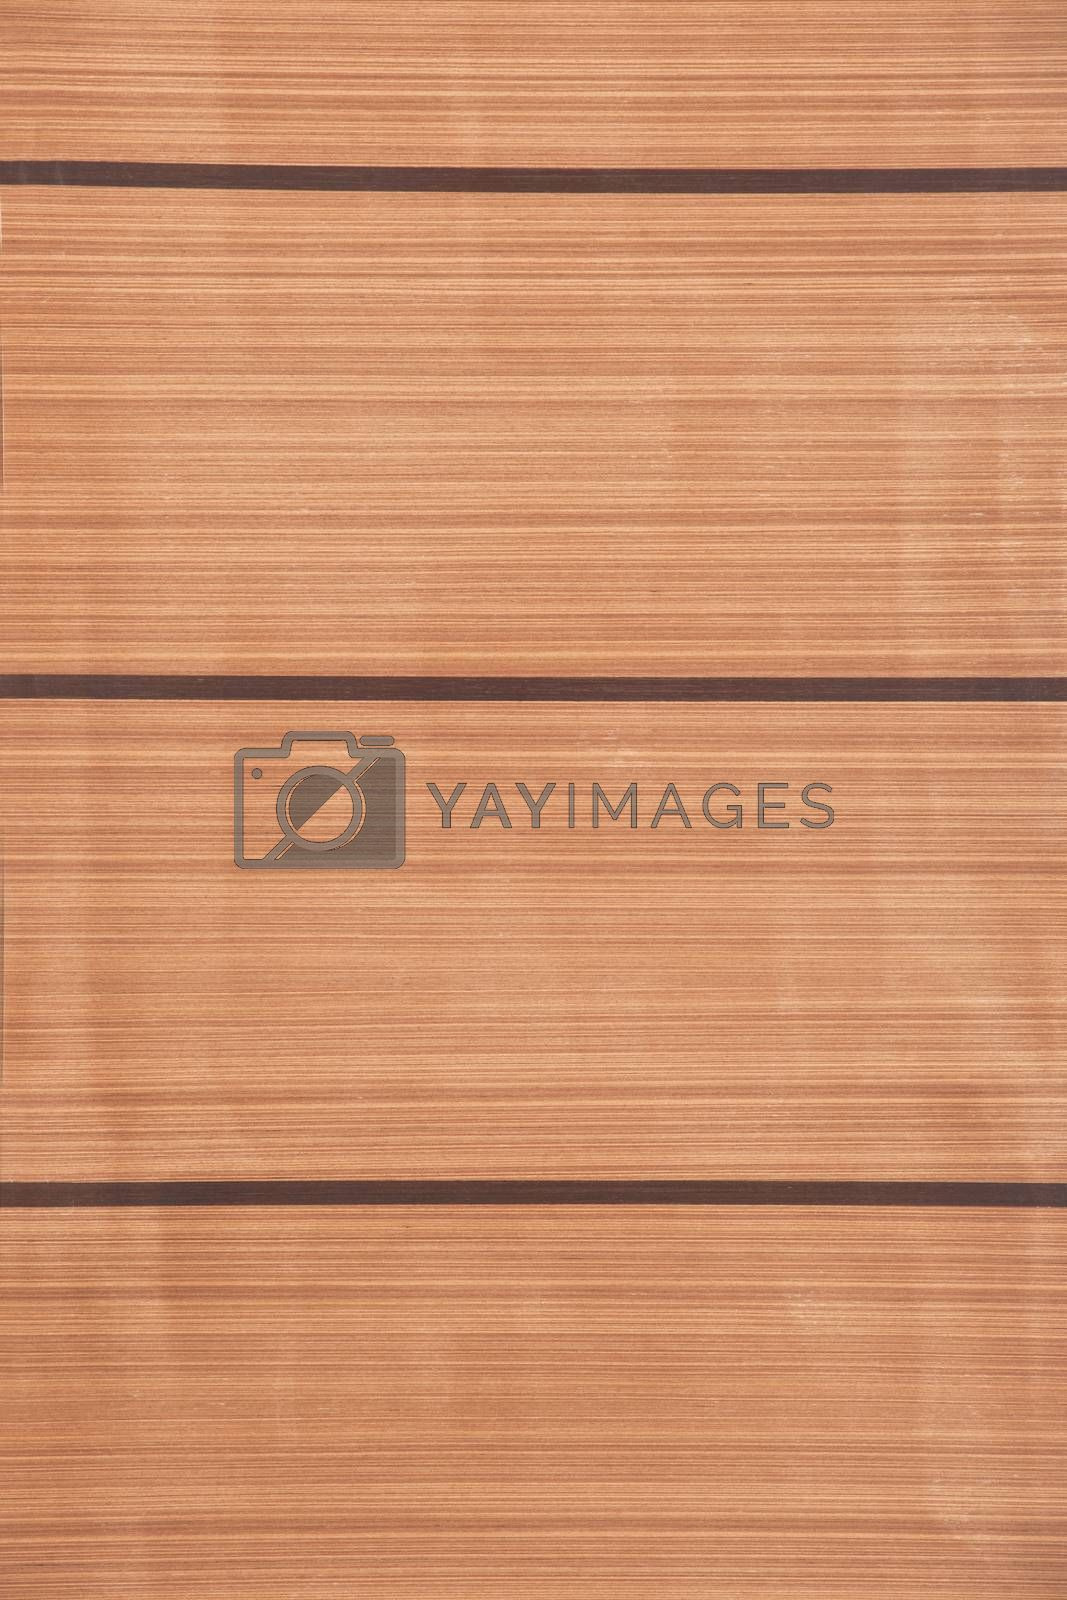 Royalty free image of Wooden Floor by emirkoo